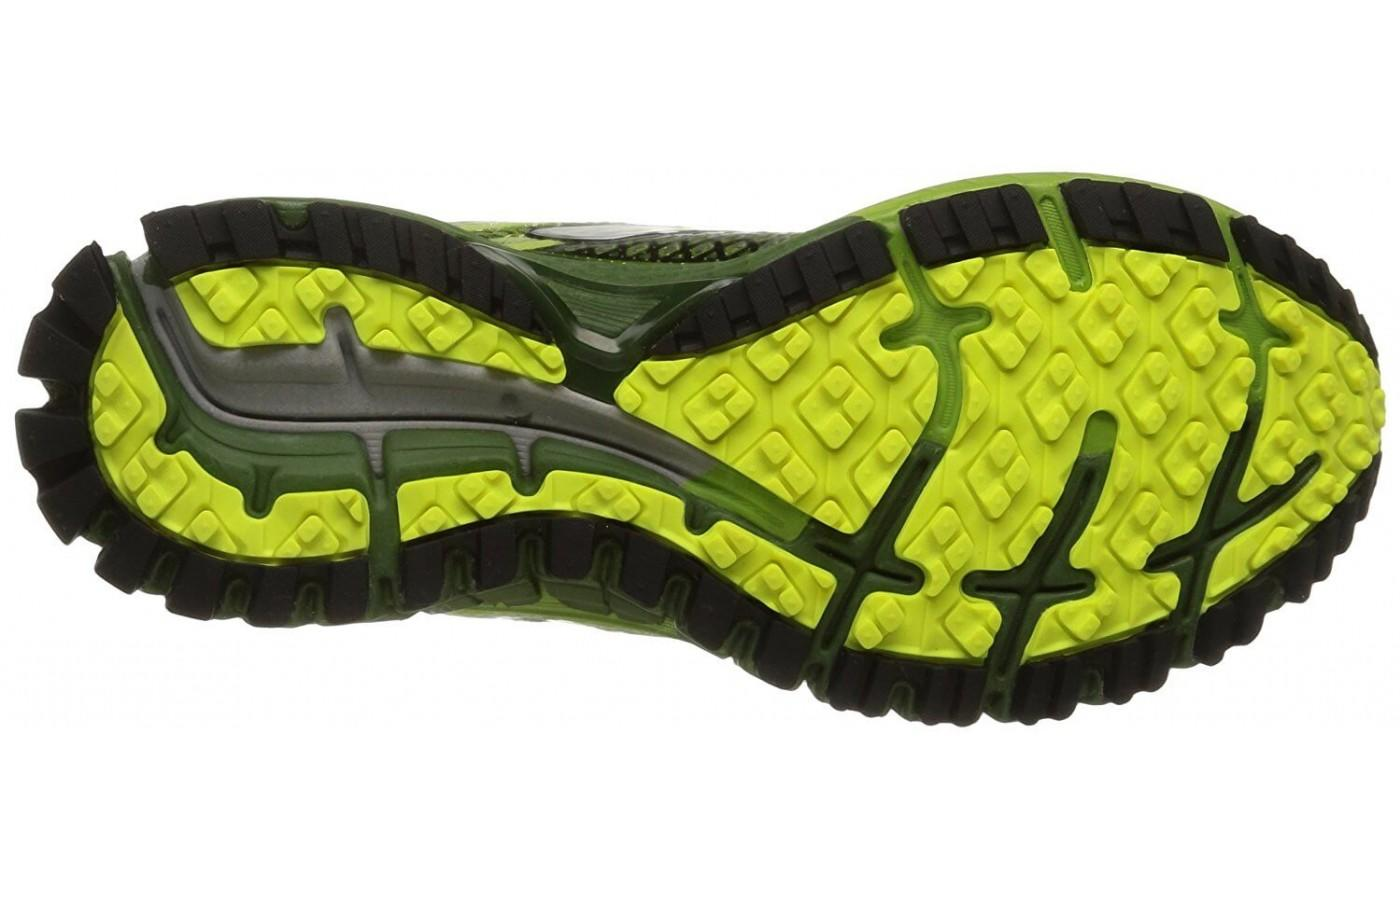 the Brooks Adrenaline ASR 12 has aggressive lugs for traction on the toughest of trails